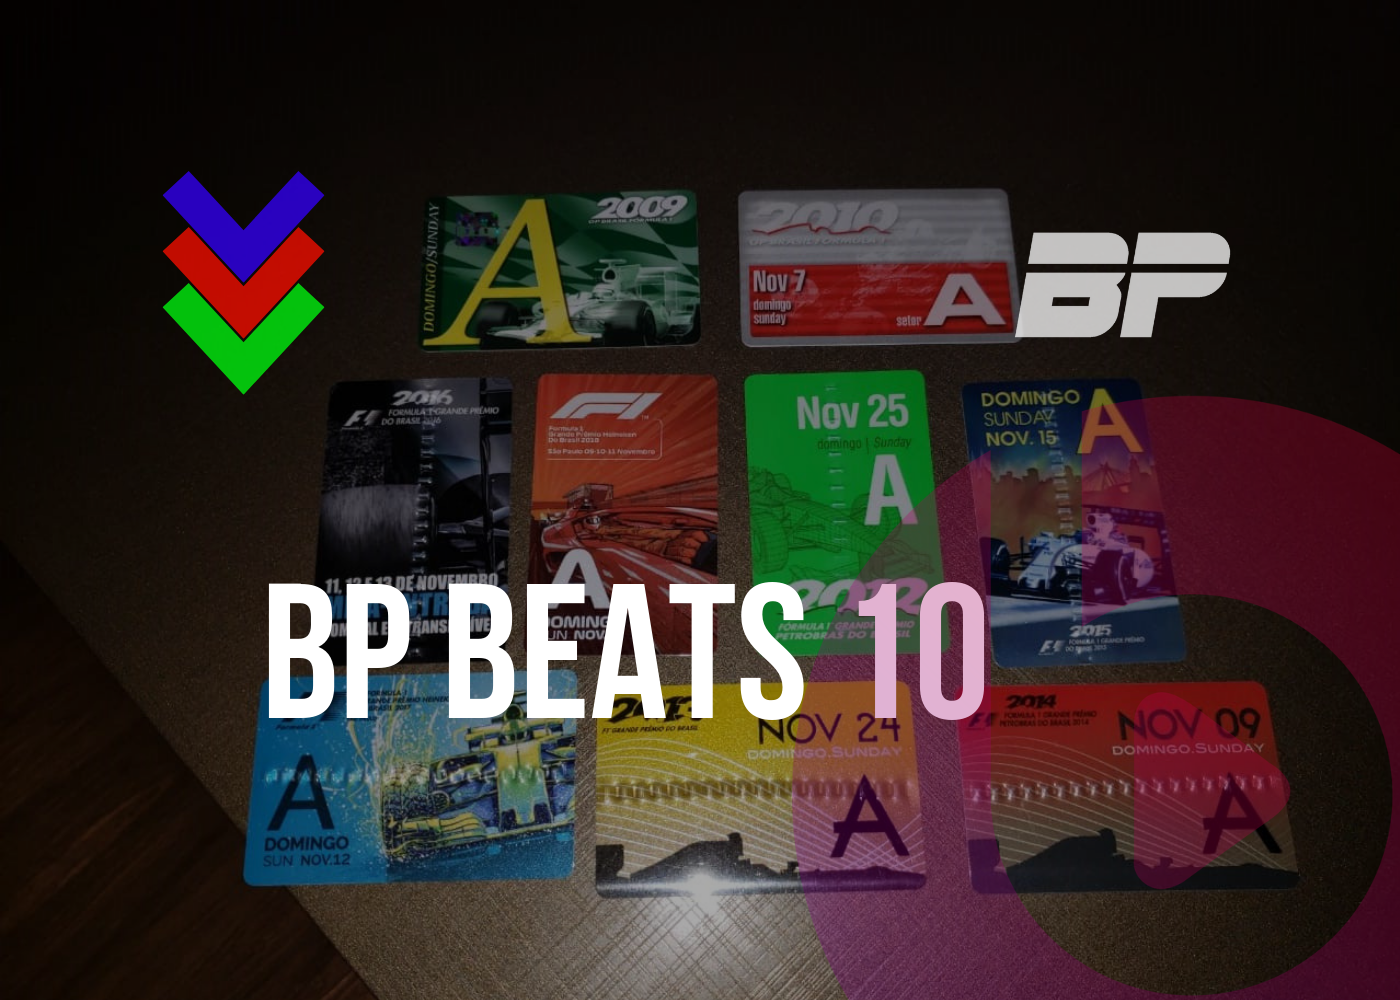 Foto de BP BEATS 10 | Nós e Interlagos